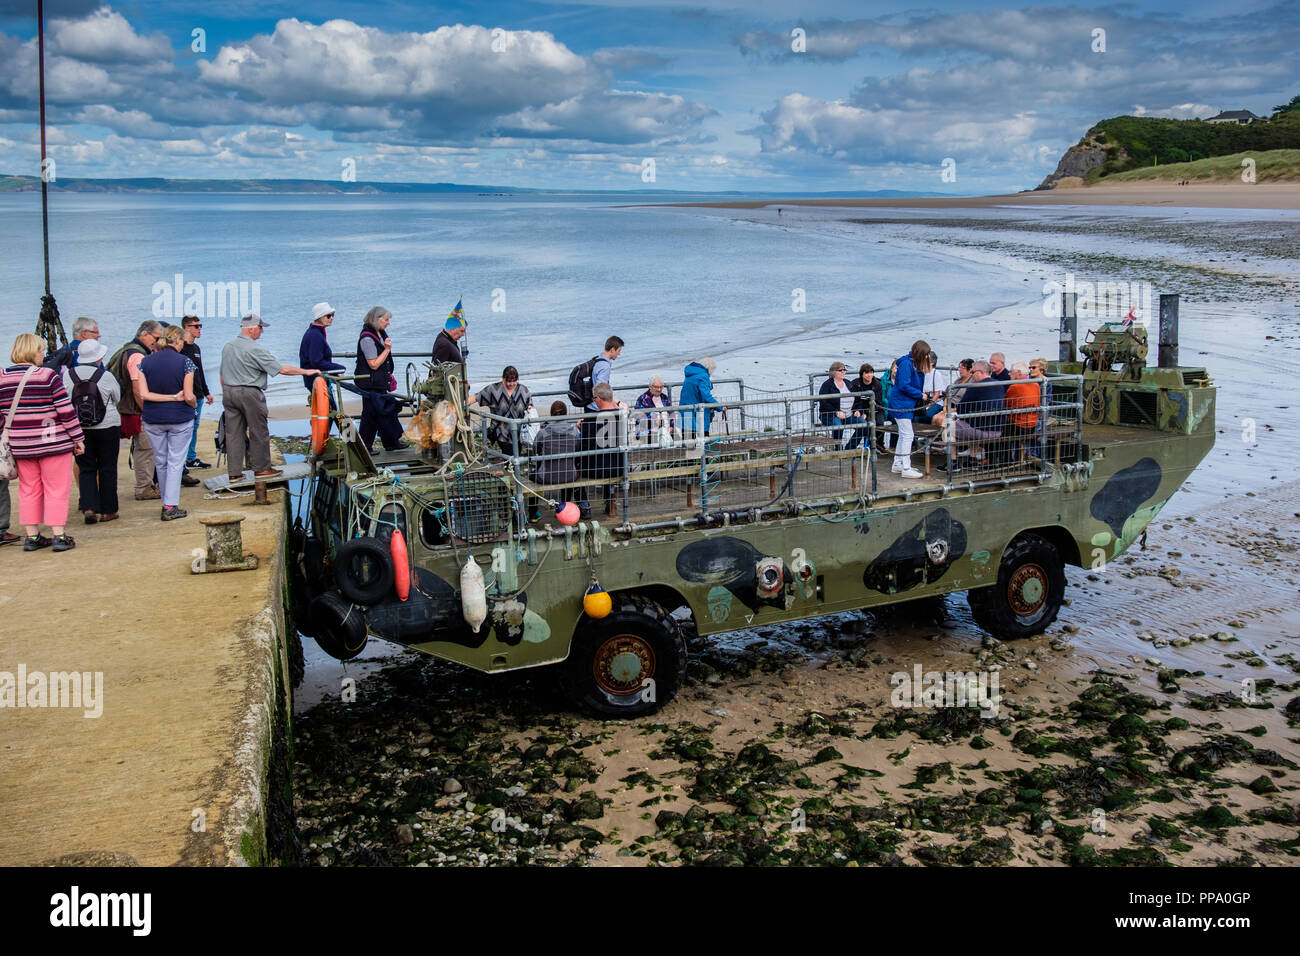 Amphibious vehicle shuttling people between jetty and boats at low tide on Caldey Island, Pembrokeshire, Wales - Stock Image